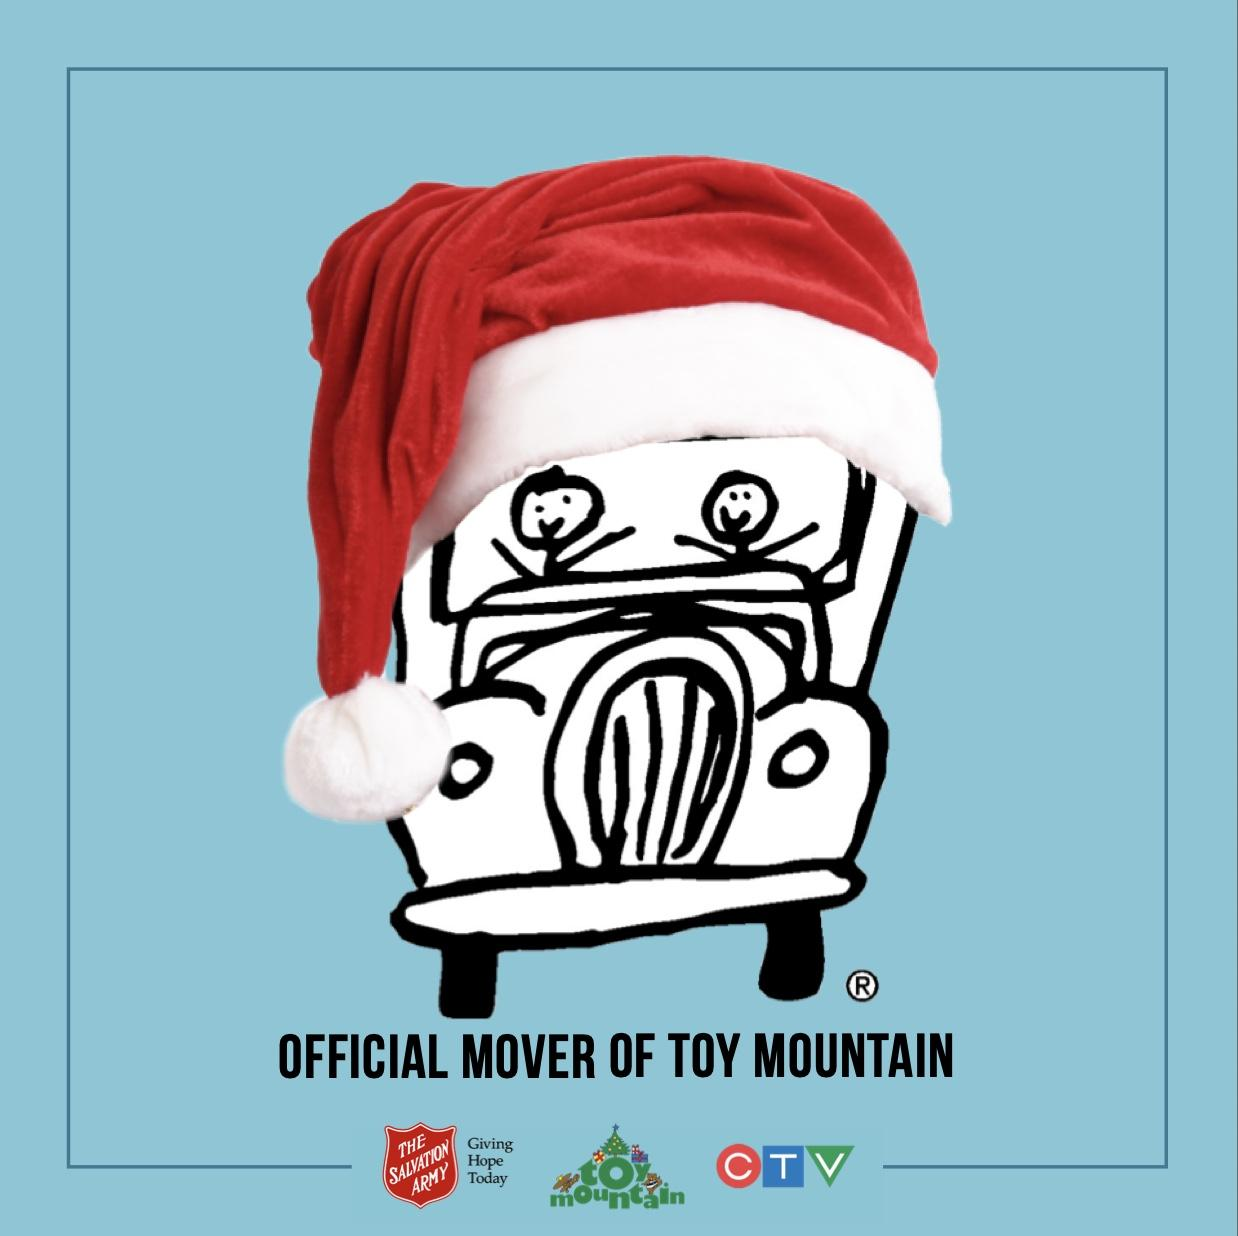 Very proud to have partnered with Toy Mountain for the 3rd consecutive year.